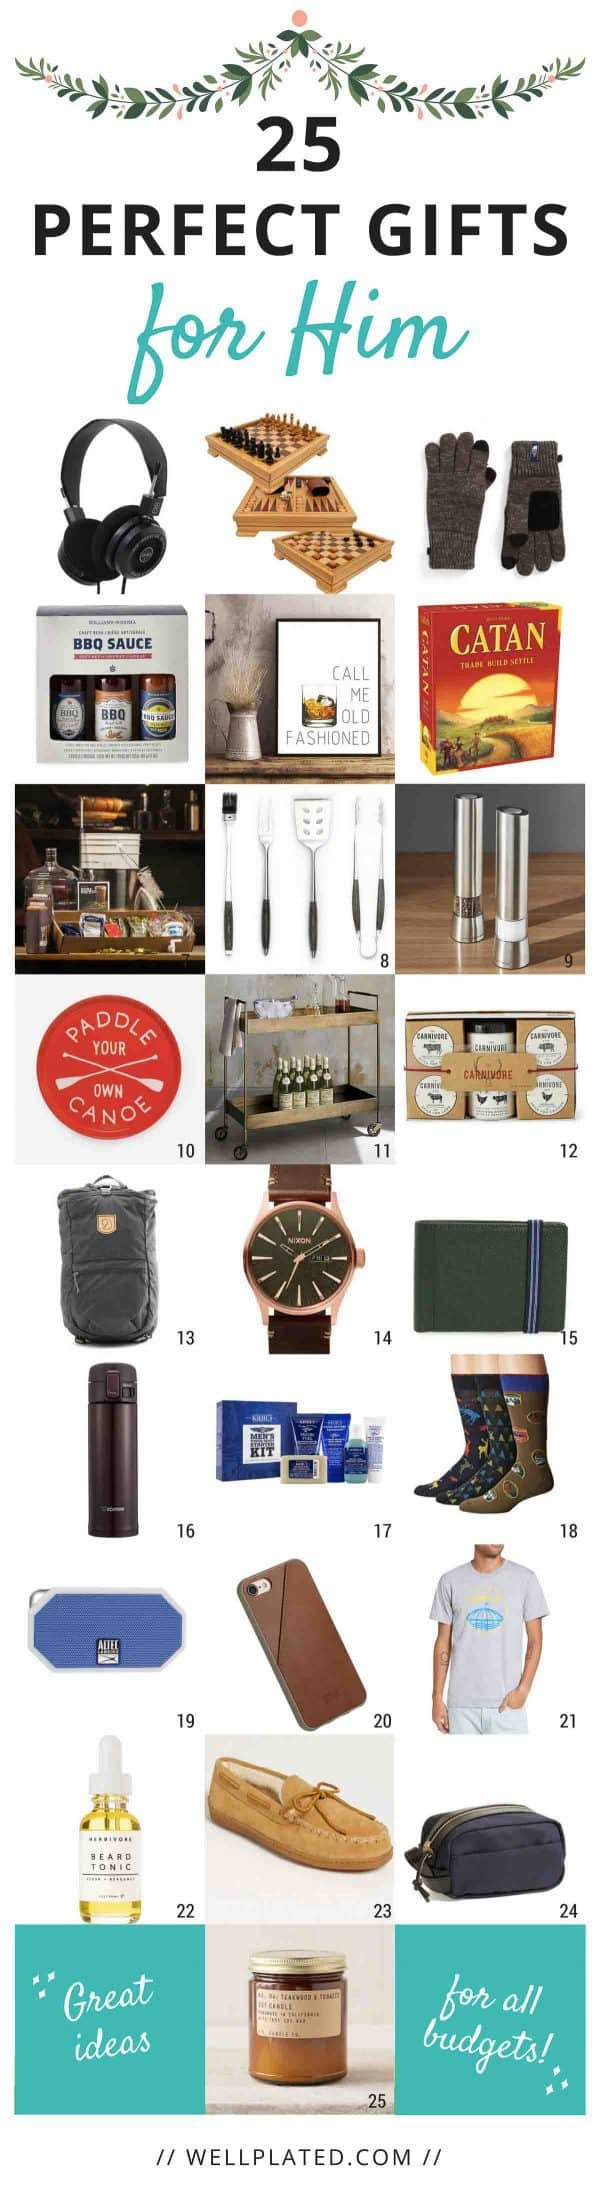 25 Unique Gift Ideas For Your Husband Dad Boyfriend And More